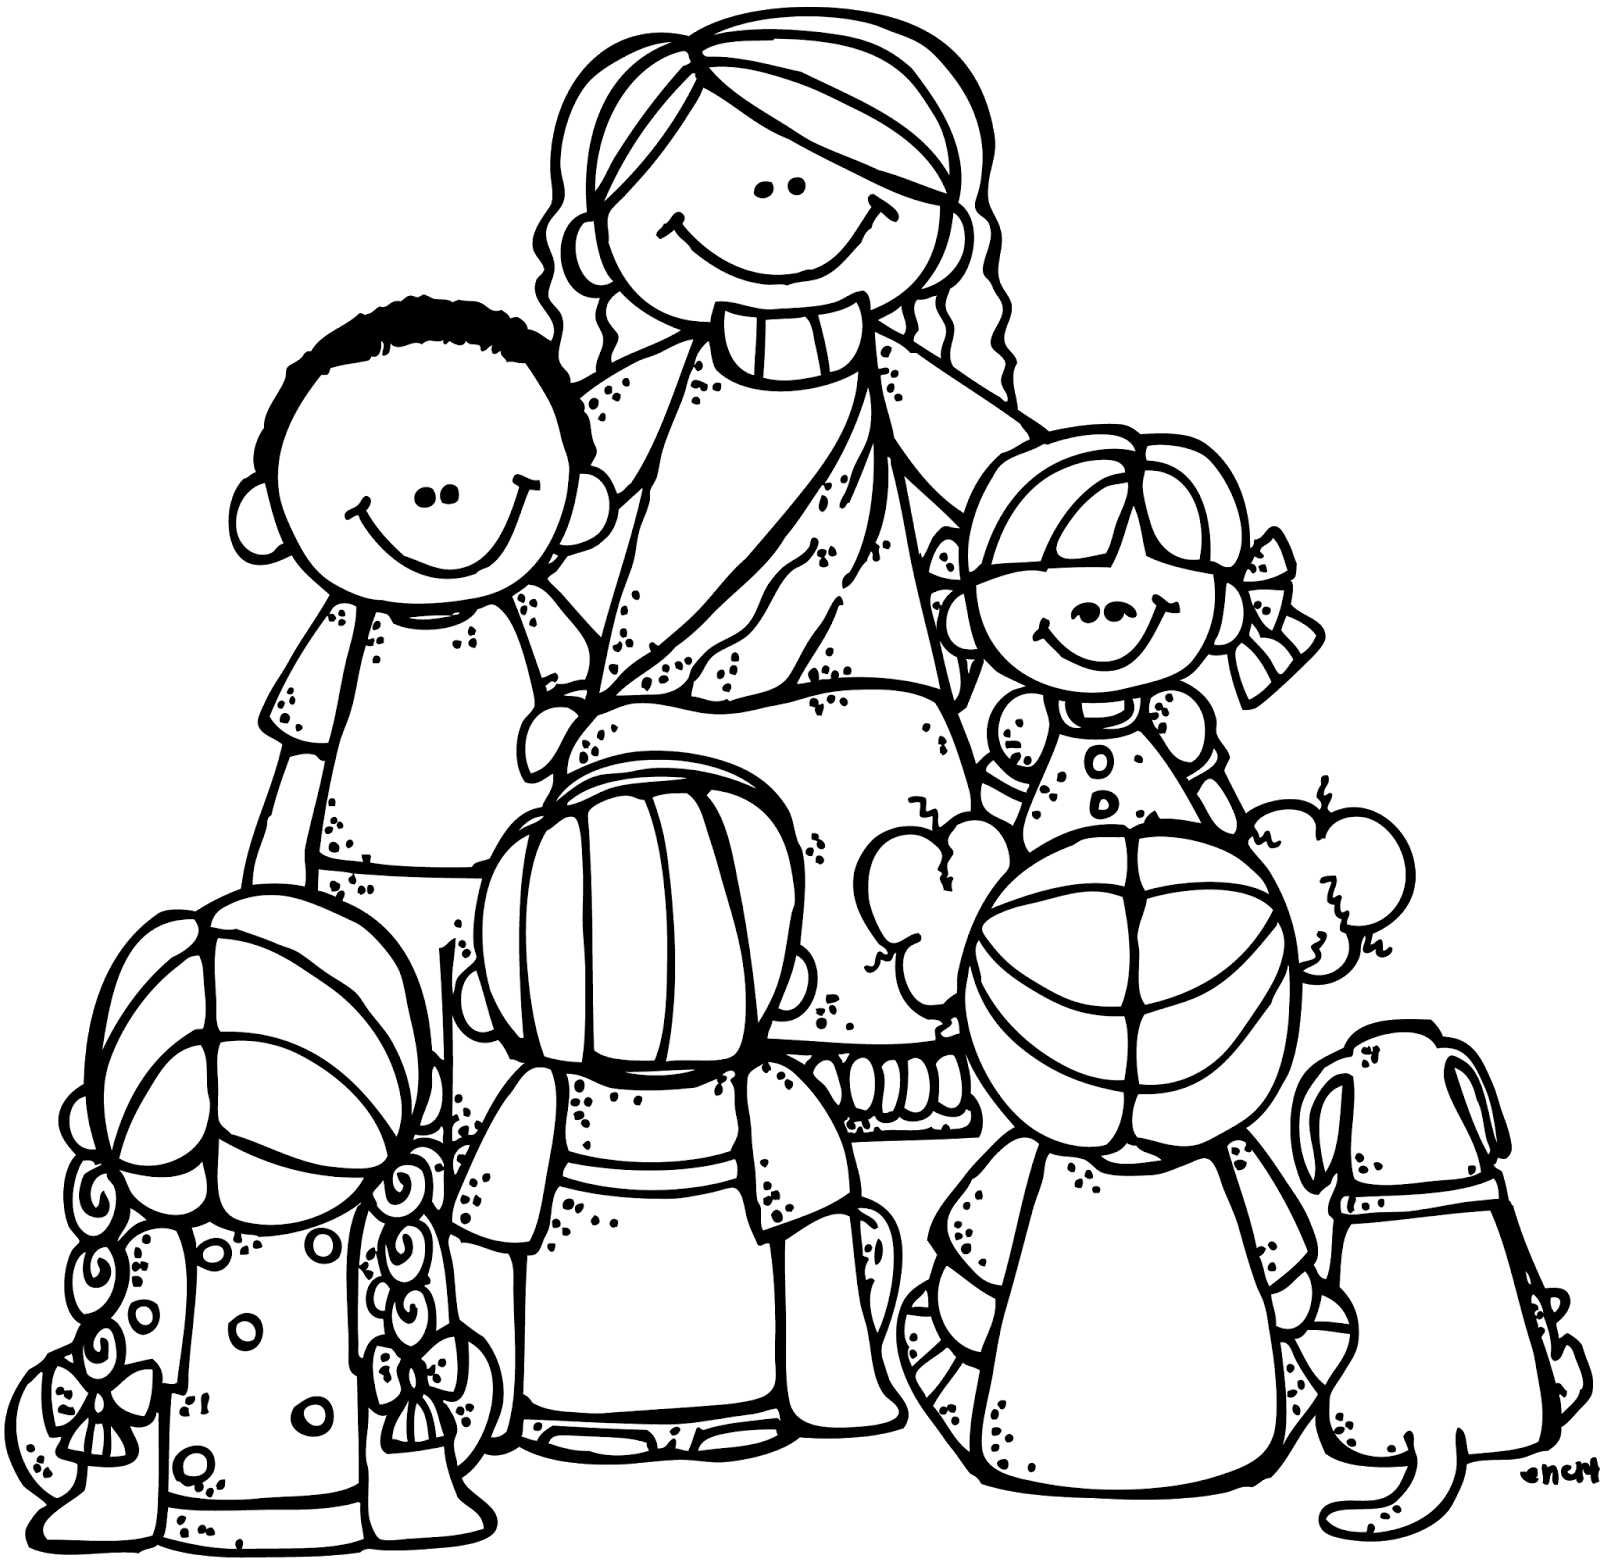 Melonheadz mary with jesus clipart banner royalty free Melonheadz jesus preaching clipart - ClipartFox banner royalty free